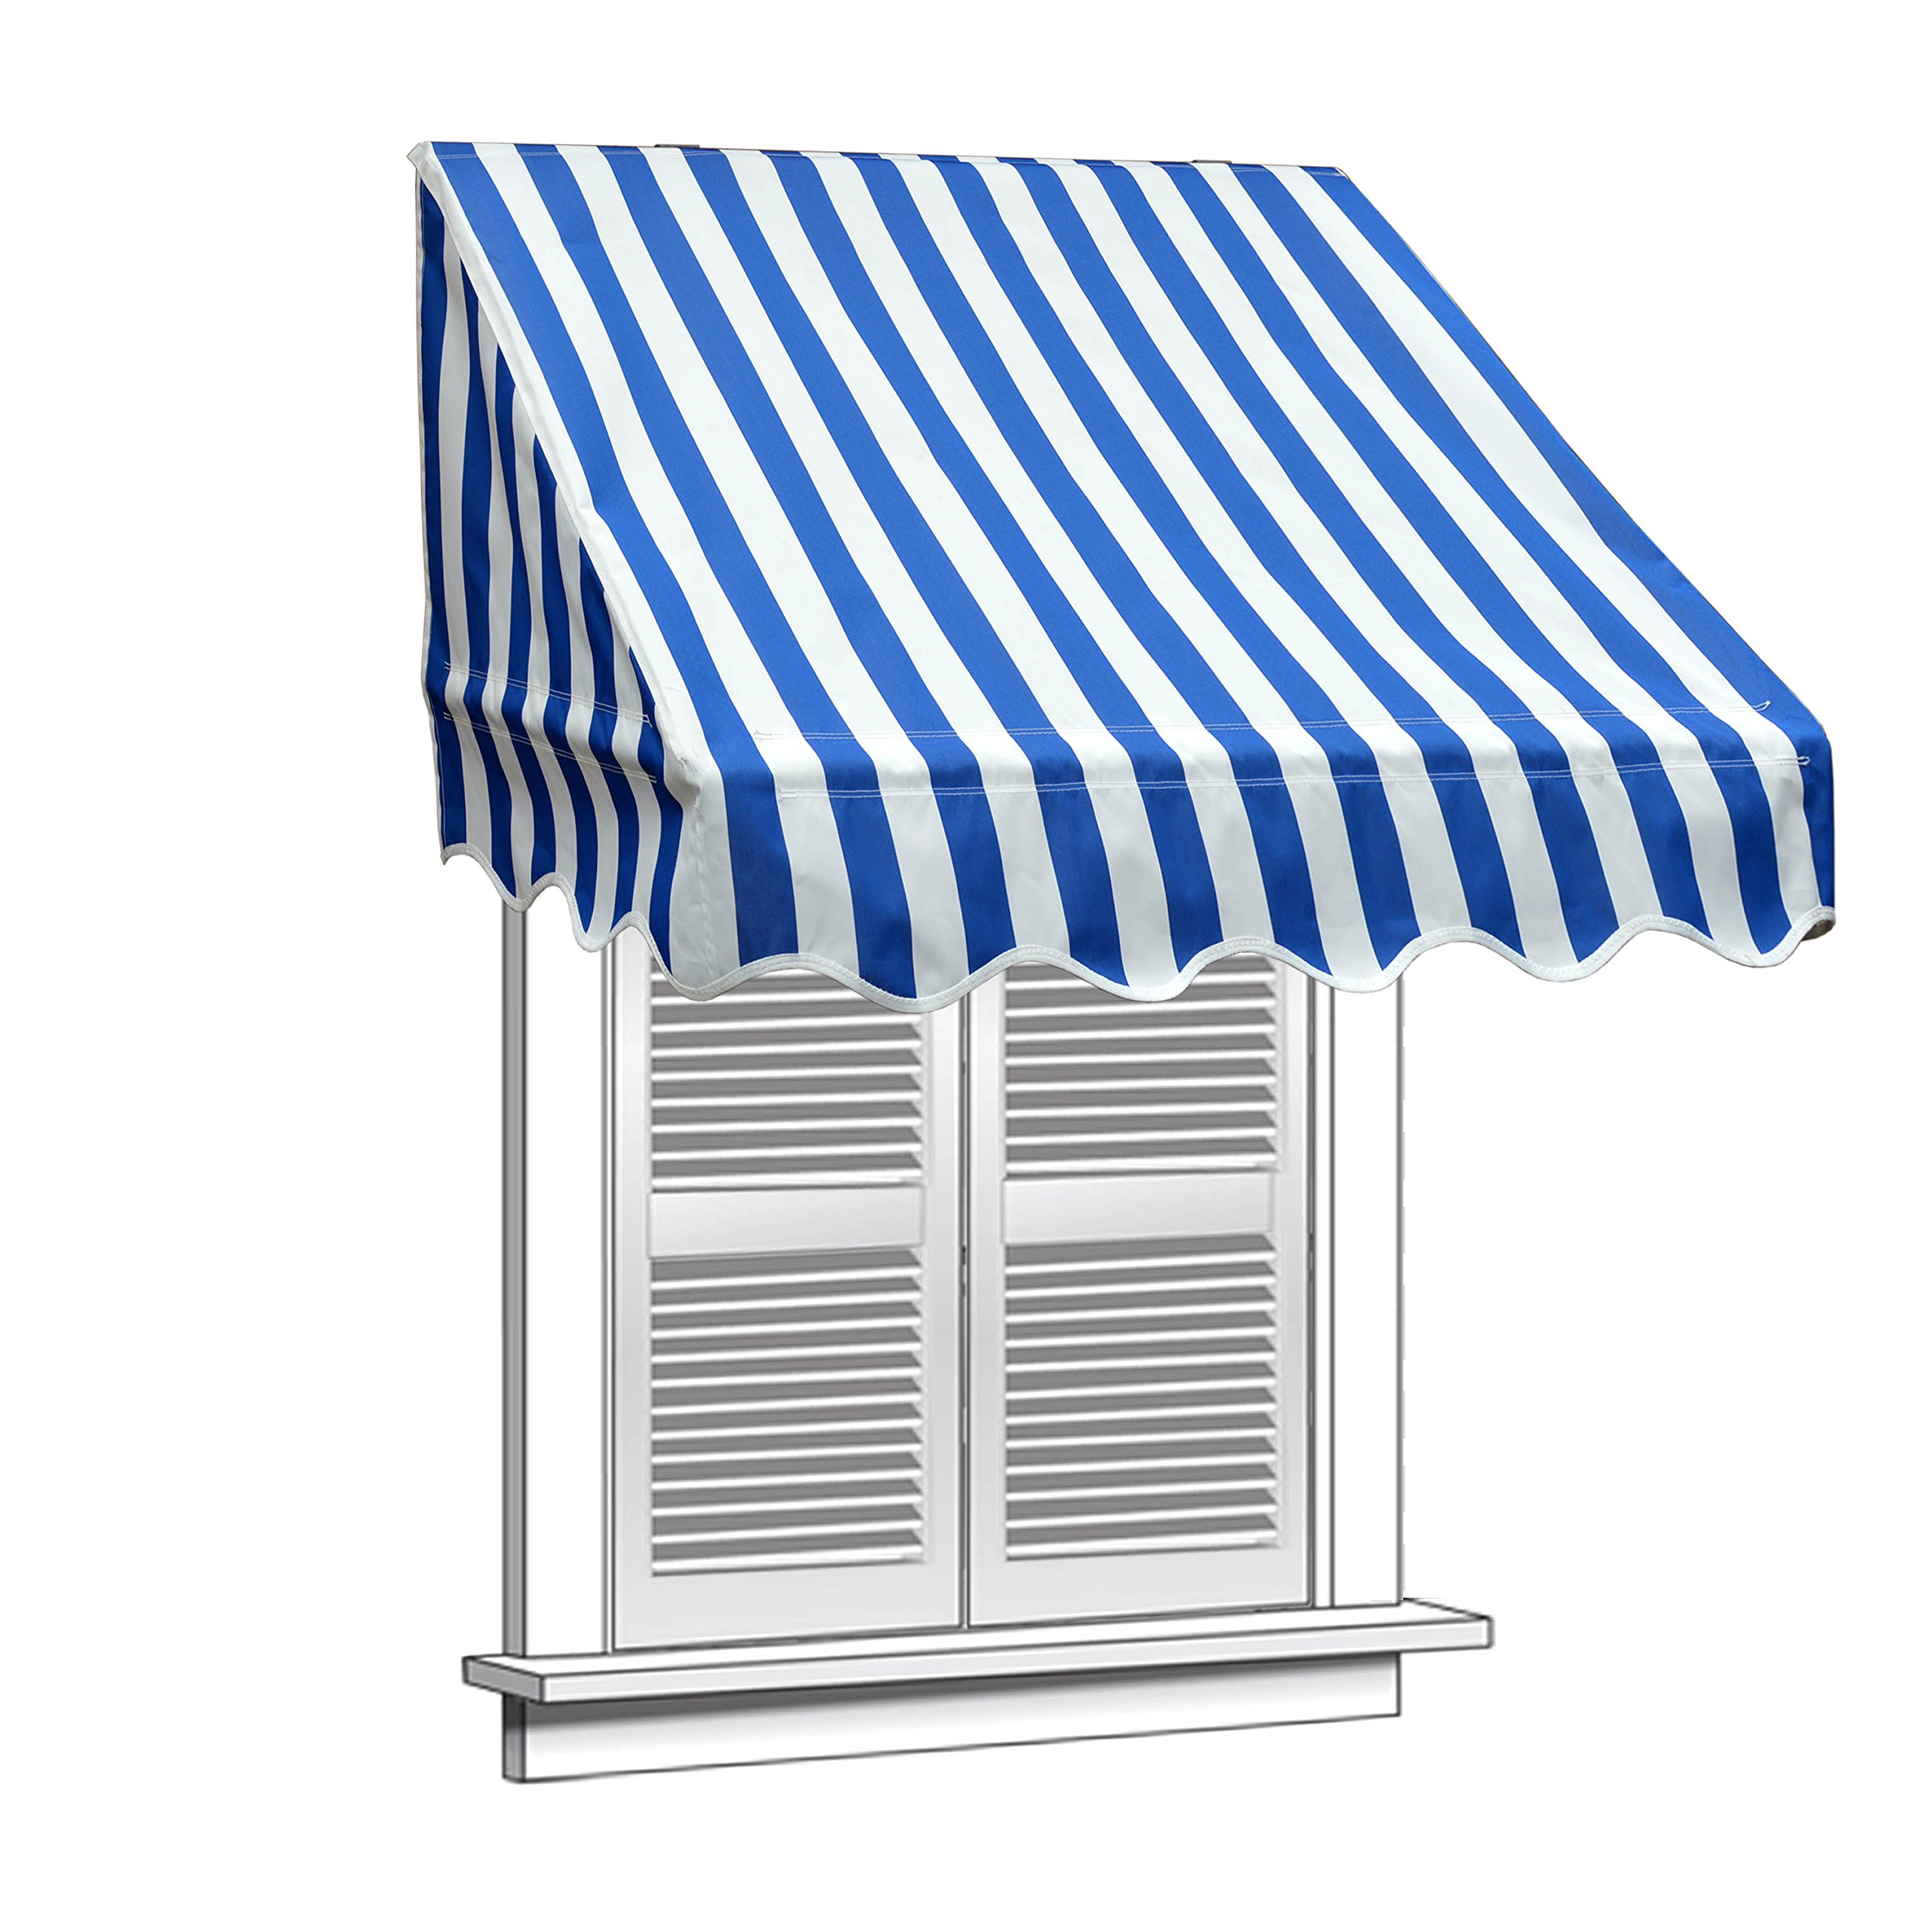 ALEKO 4x2 Feet Blue/White Stripe Window Awning Door Canopy 4-Foot Decorator Awning